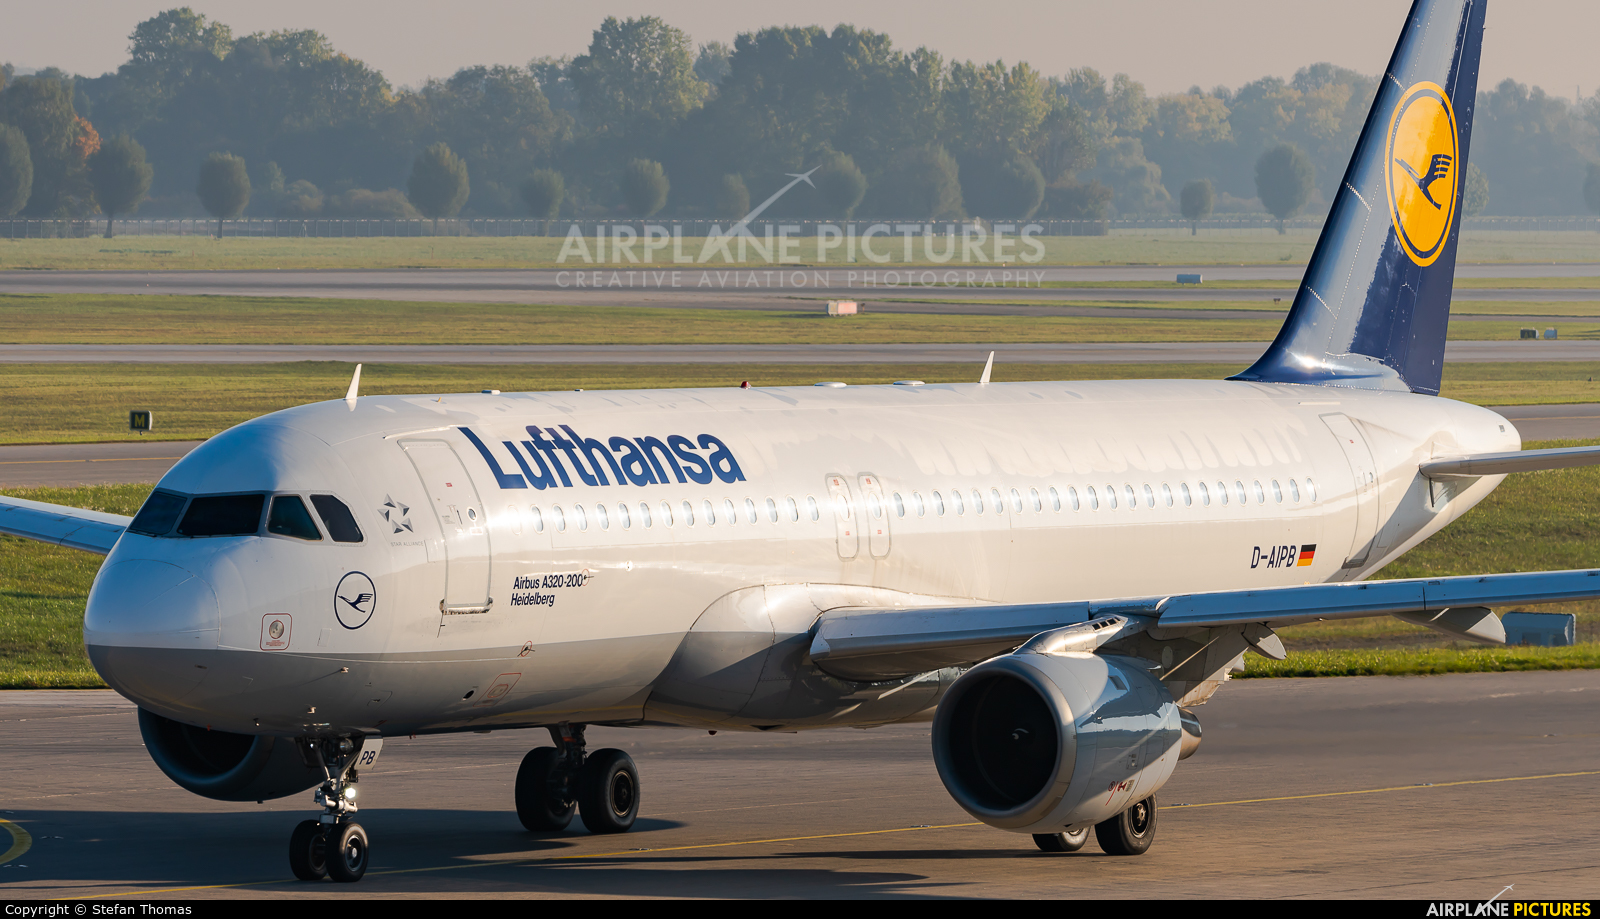 Lufthansa D-AIPB aircraft at Munich